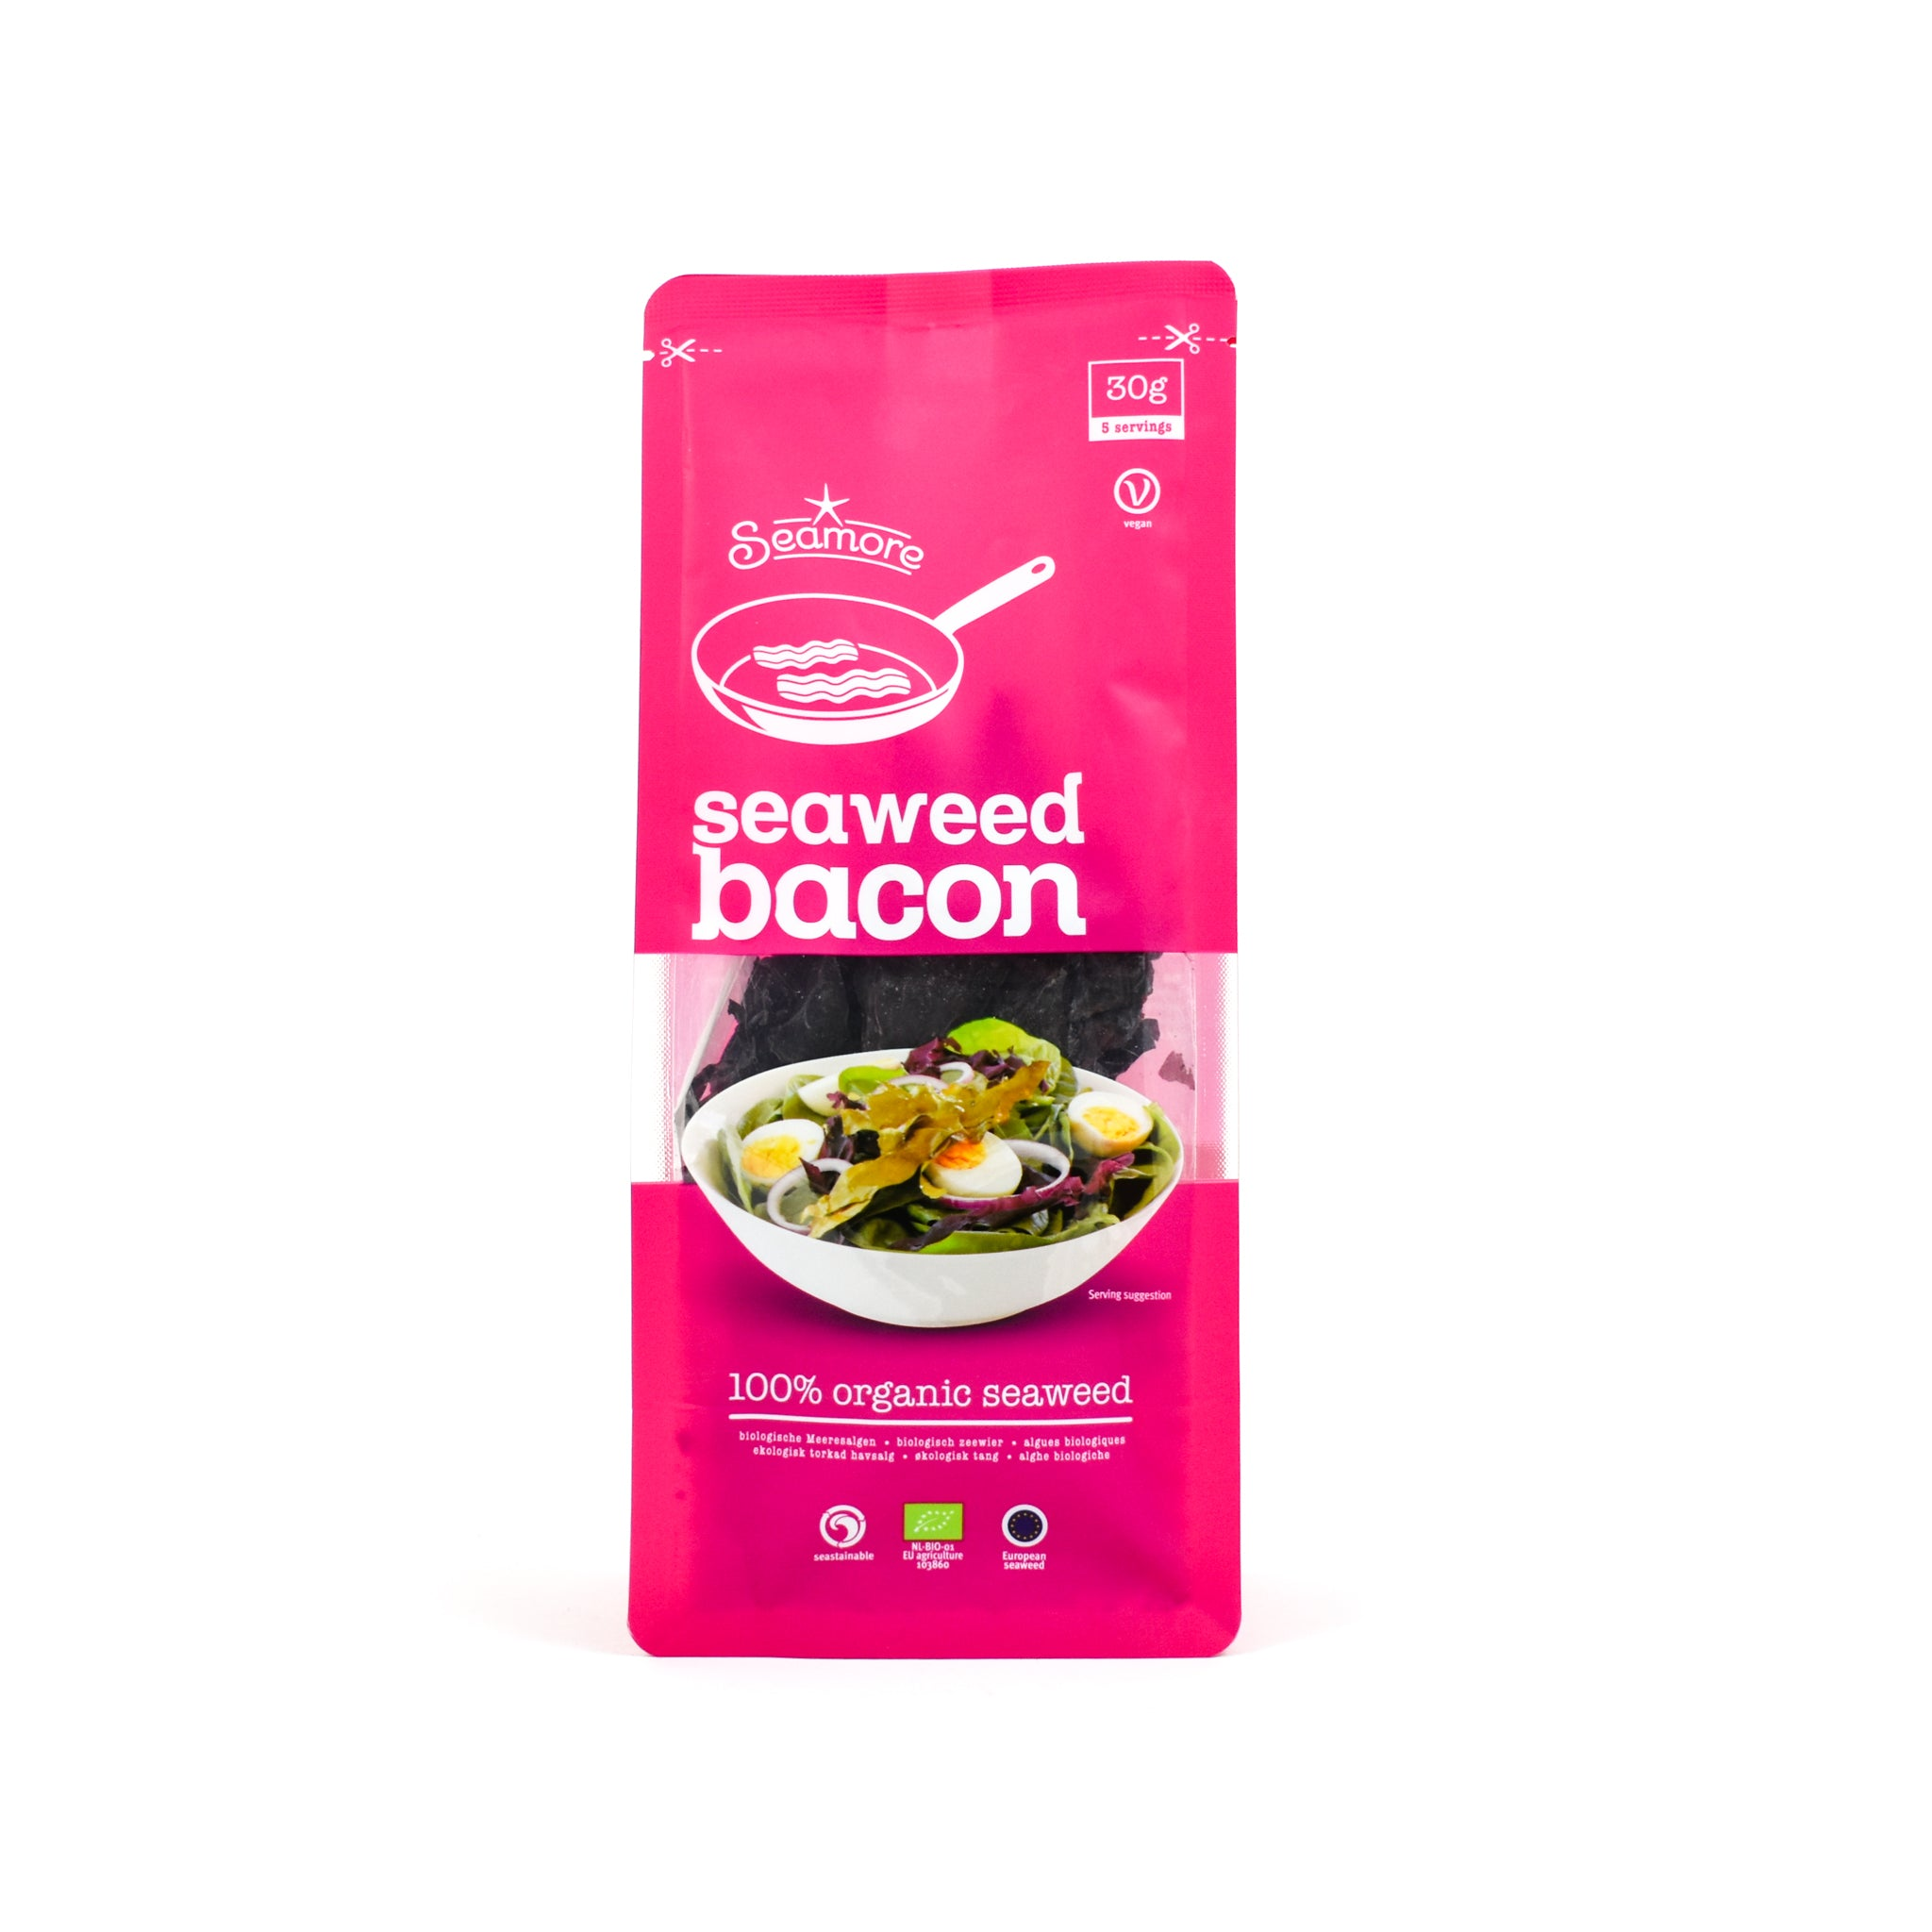 Seamore Seaweed Bacon 30g Ingredients Seaweed Squid Ink Fish